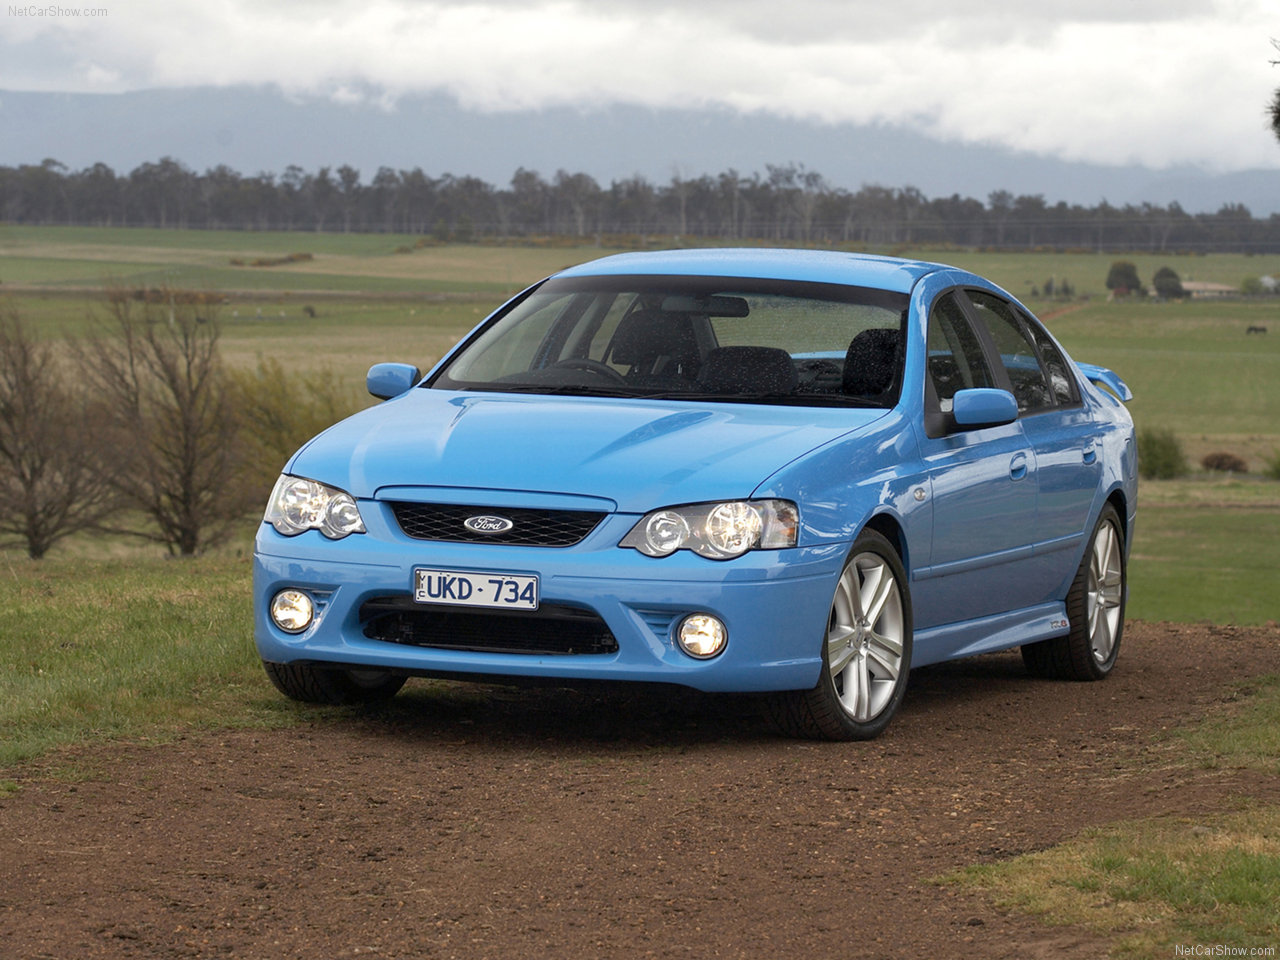 Ford - Populaire français d'automobiles: 2006 Ford BF MkII Falcon XR8